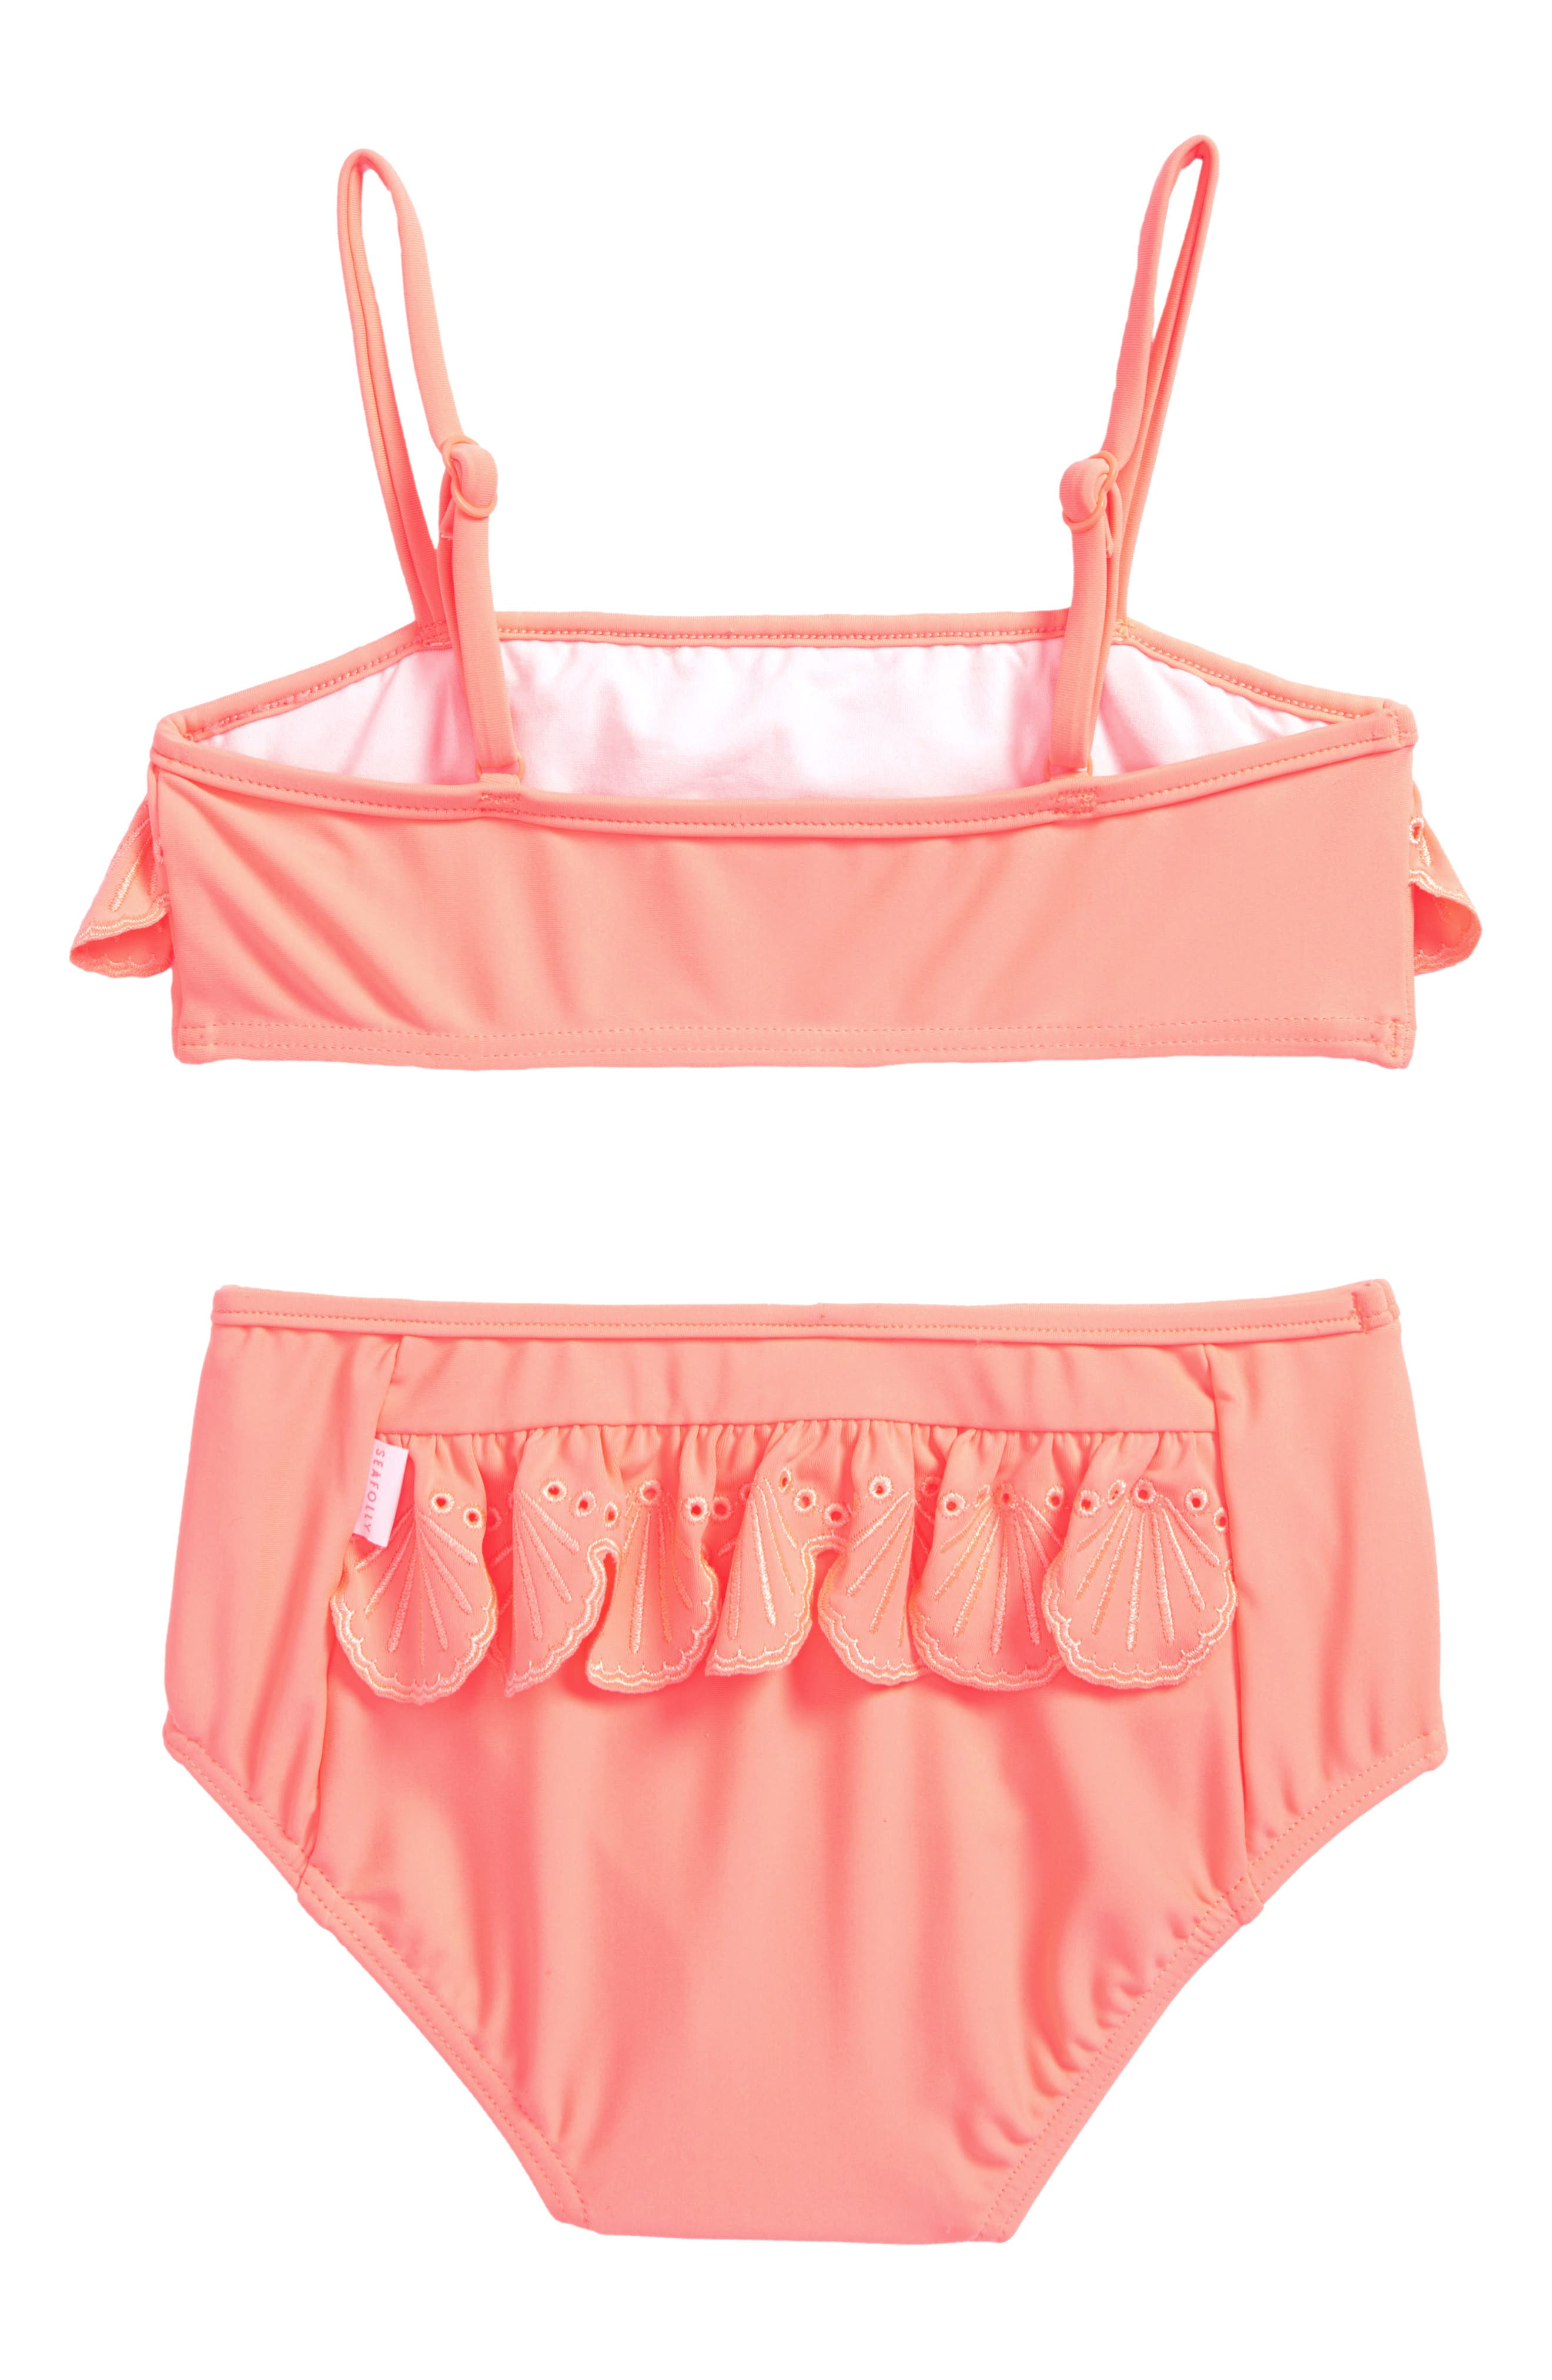 Sweet Summer Frill Two-Piece Swimsuit,                             Alternate thumbnail 2, color,                             950